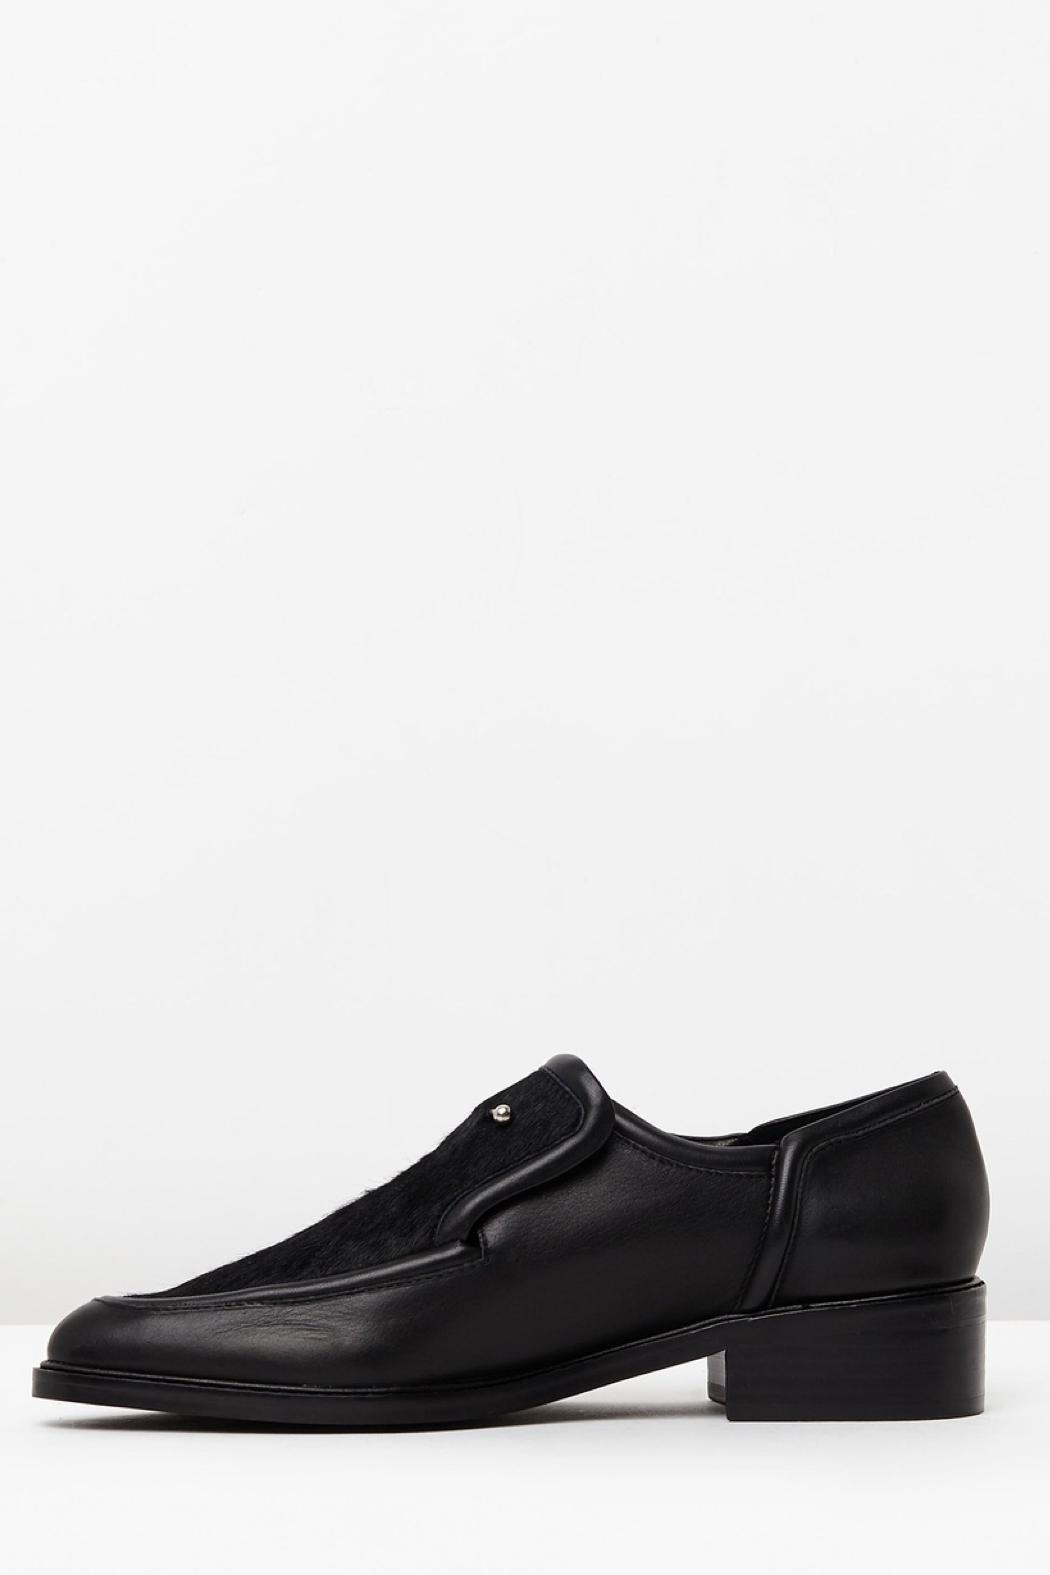 SOLSANA Pierced Leather Loafer - Main Image